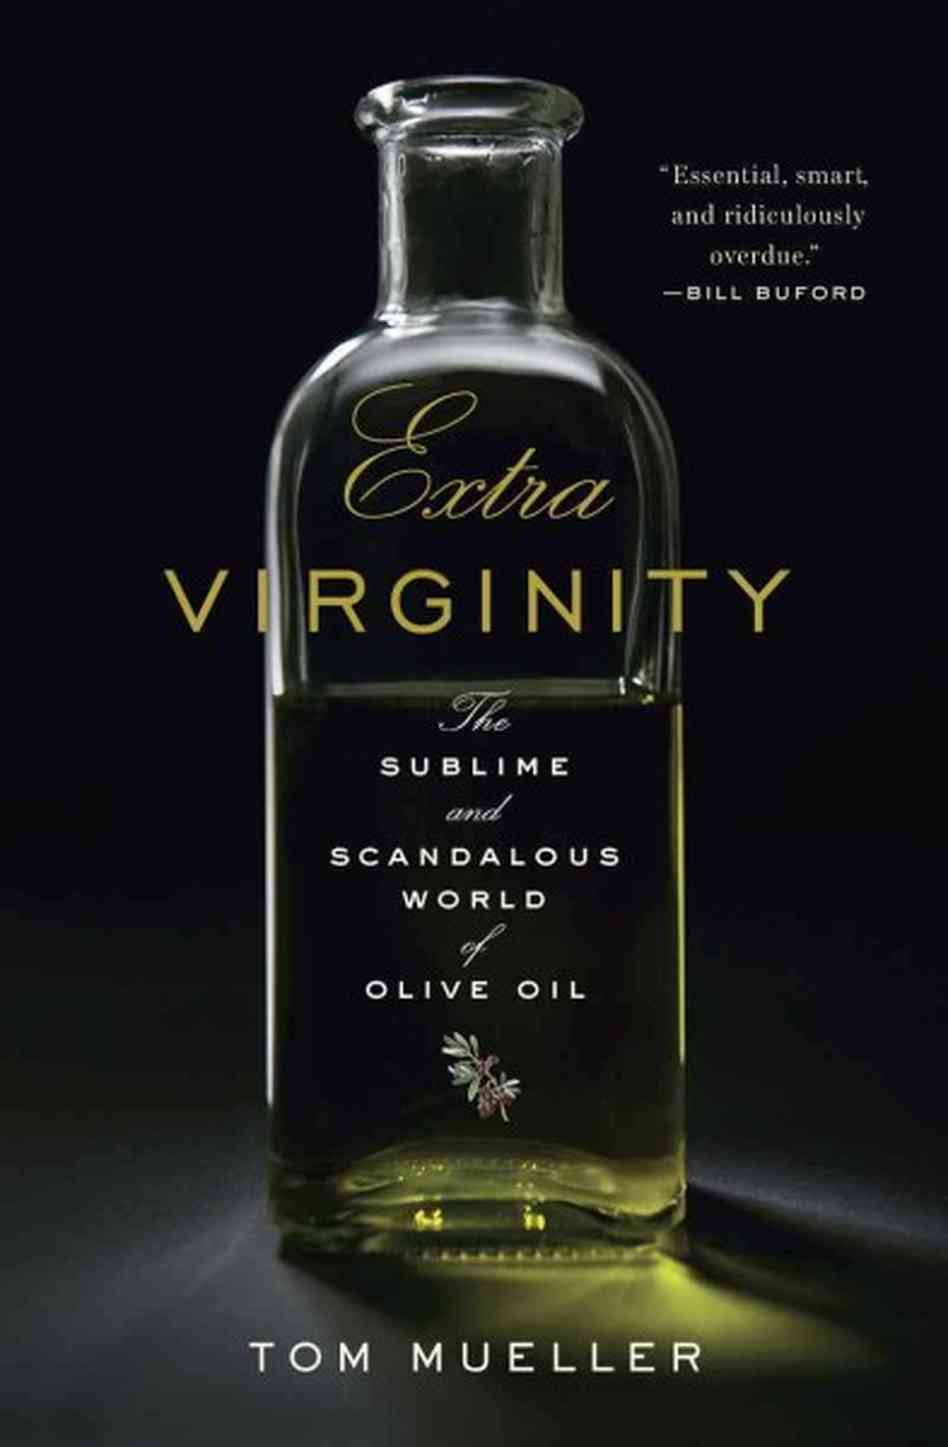 The Sublime and Scandalous World of Olive Oil: Interview with Tom Mueller